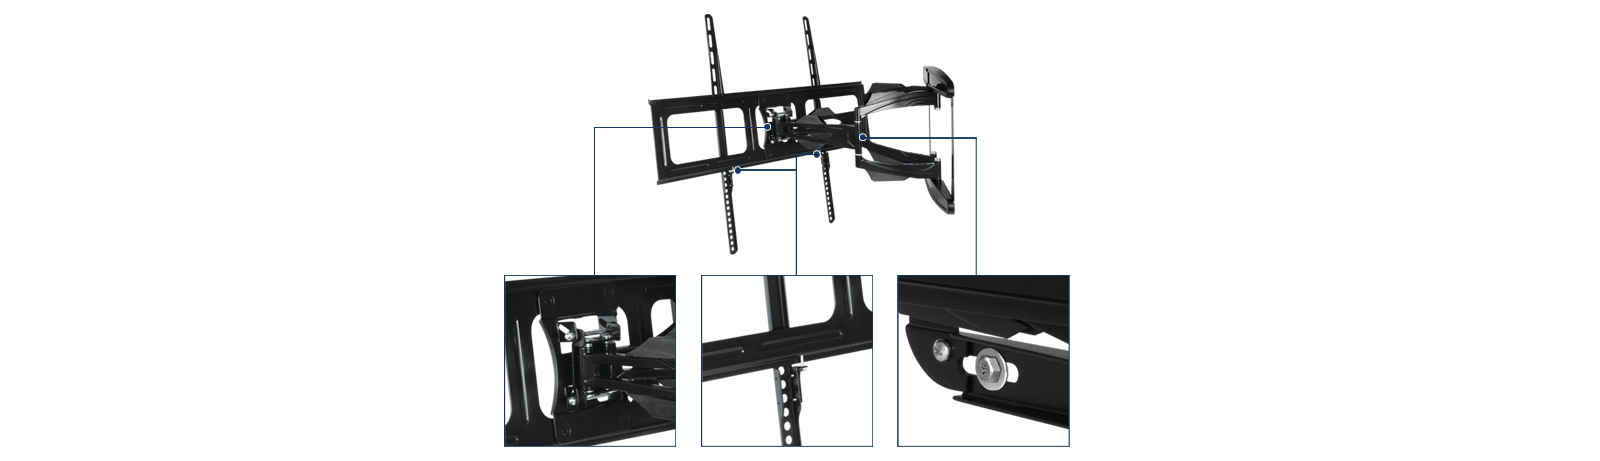 Full-Motion TV Wall Mount with Stable Lock-System ARCTIC TV Flex L